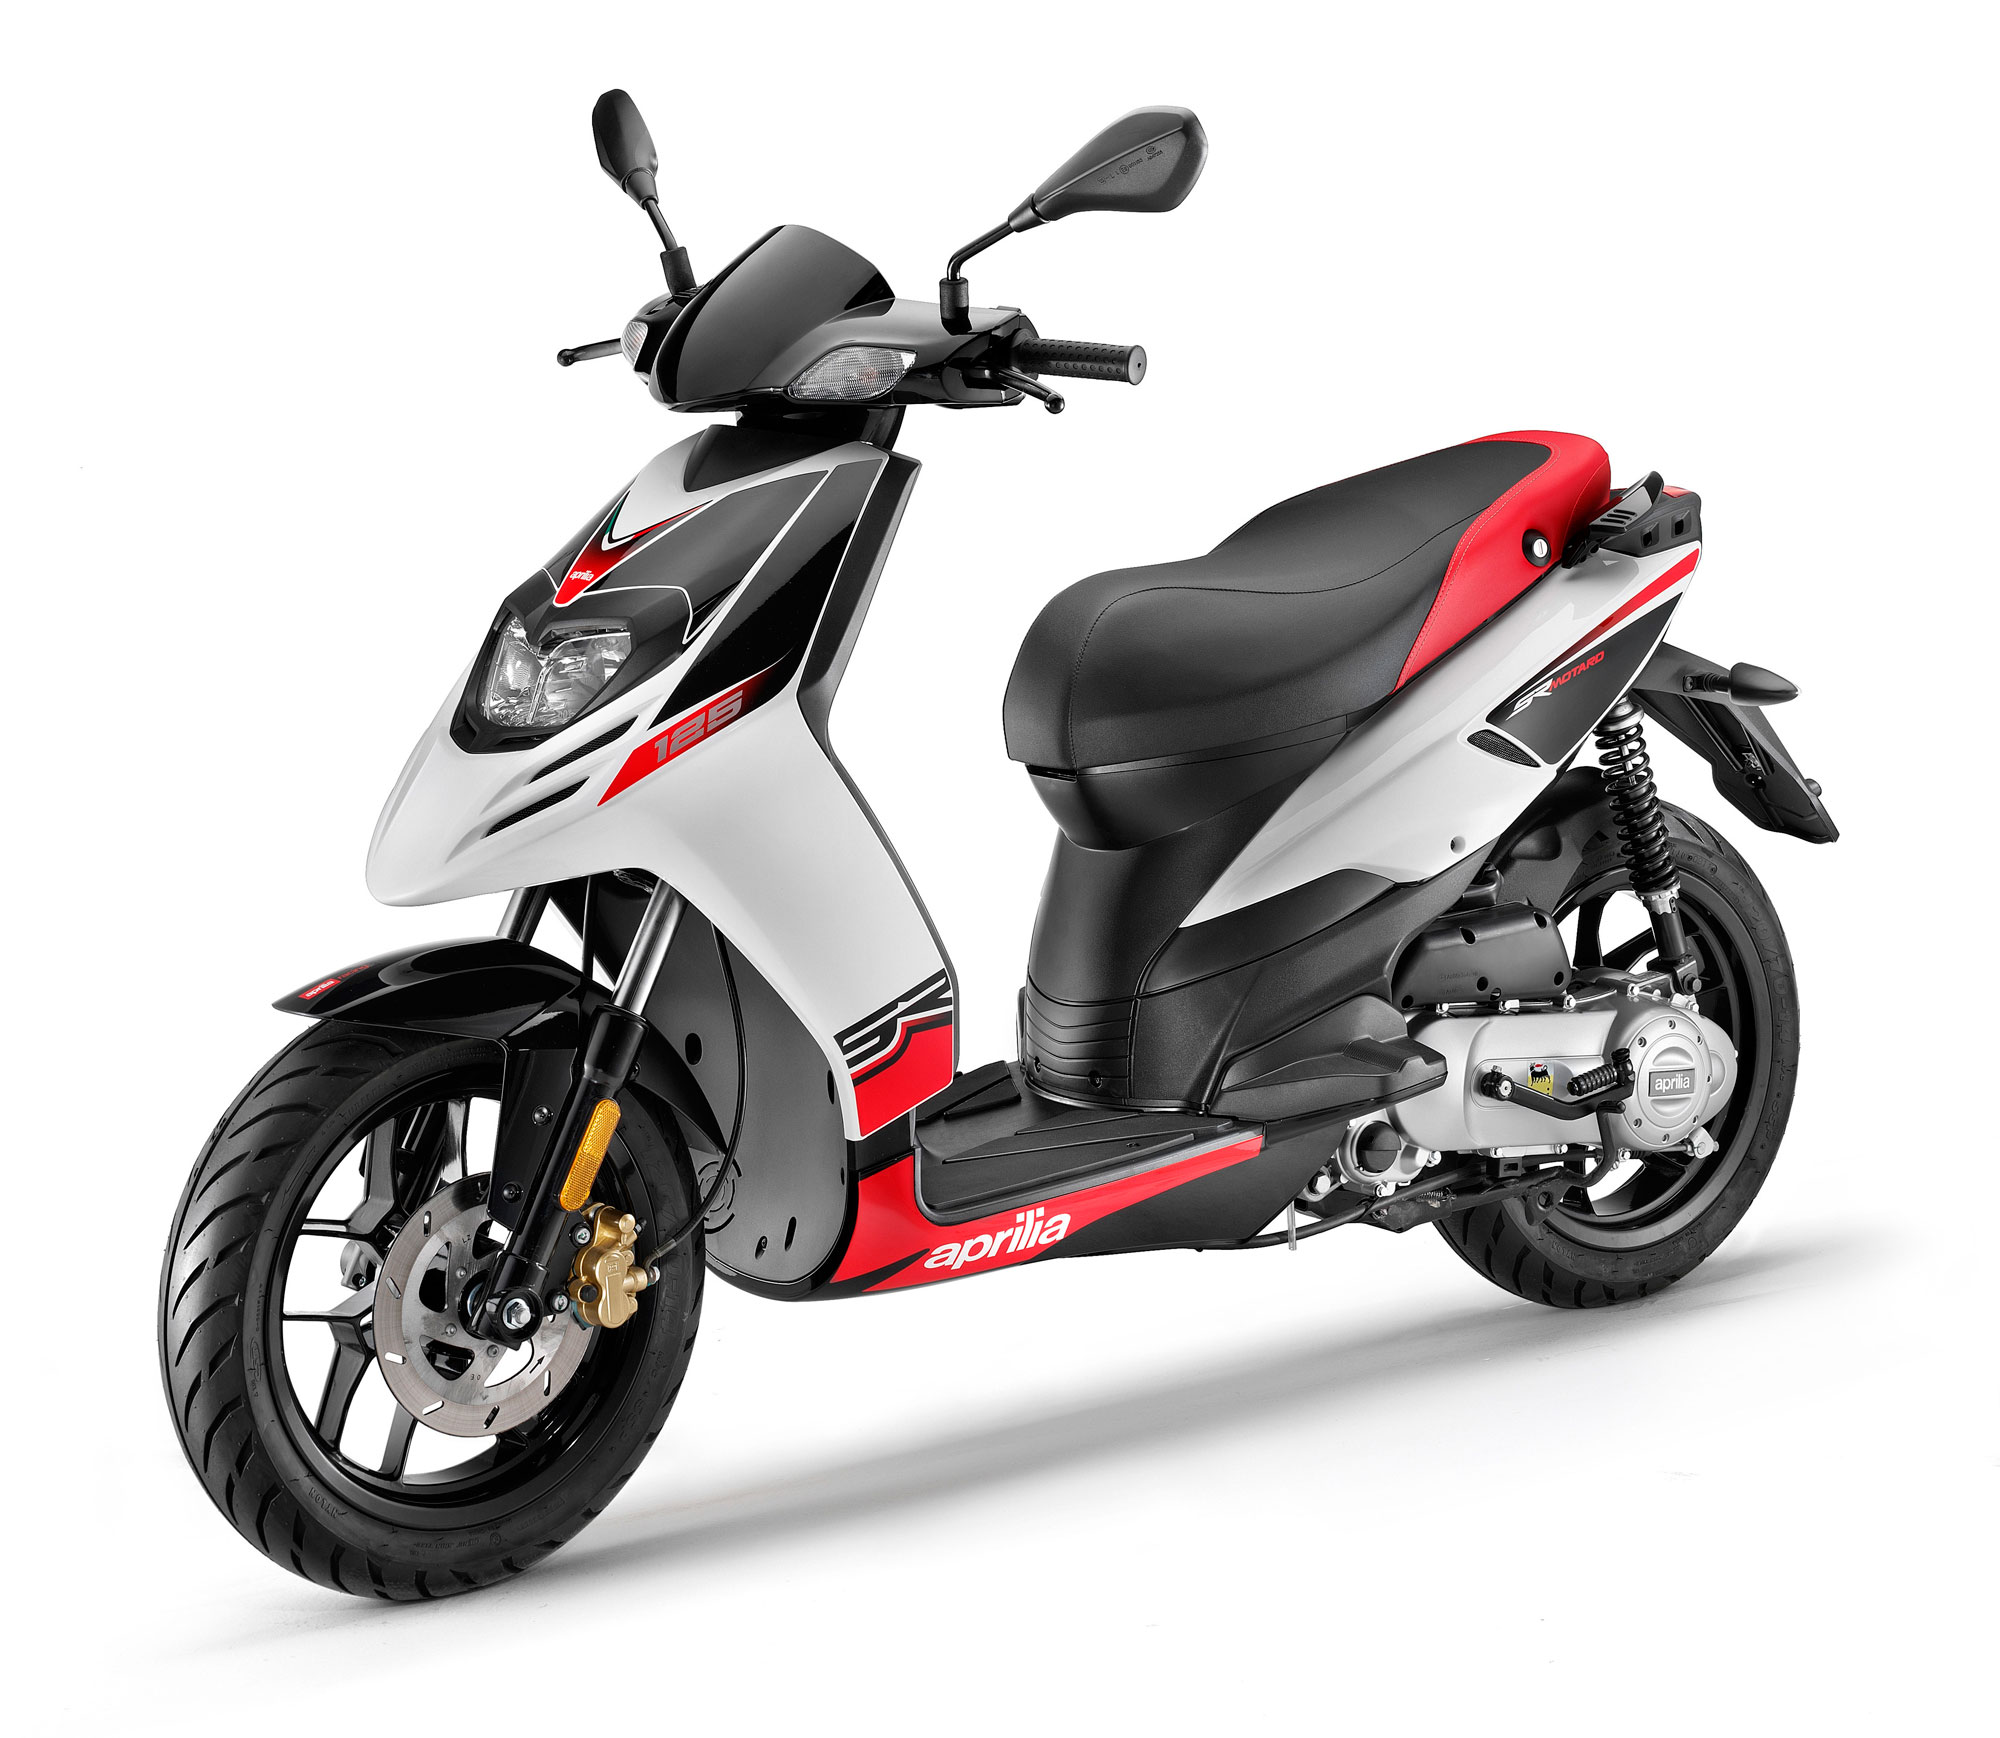 aprilia sr motard 125 specs 2011 2012 autoevolution. Black Bedroom Furniture Sets. Home Design Ideas